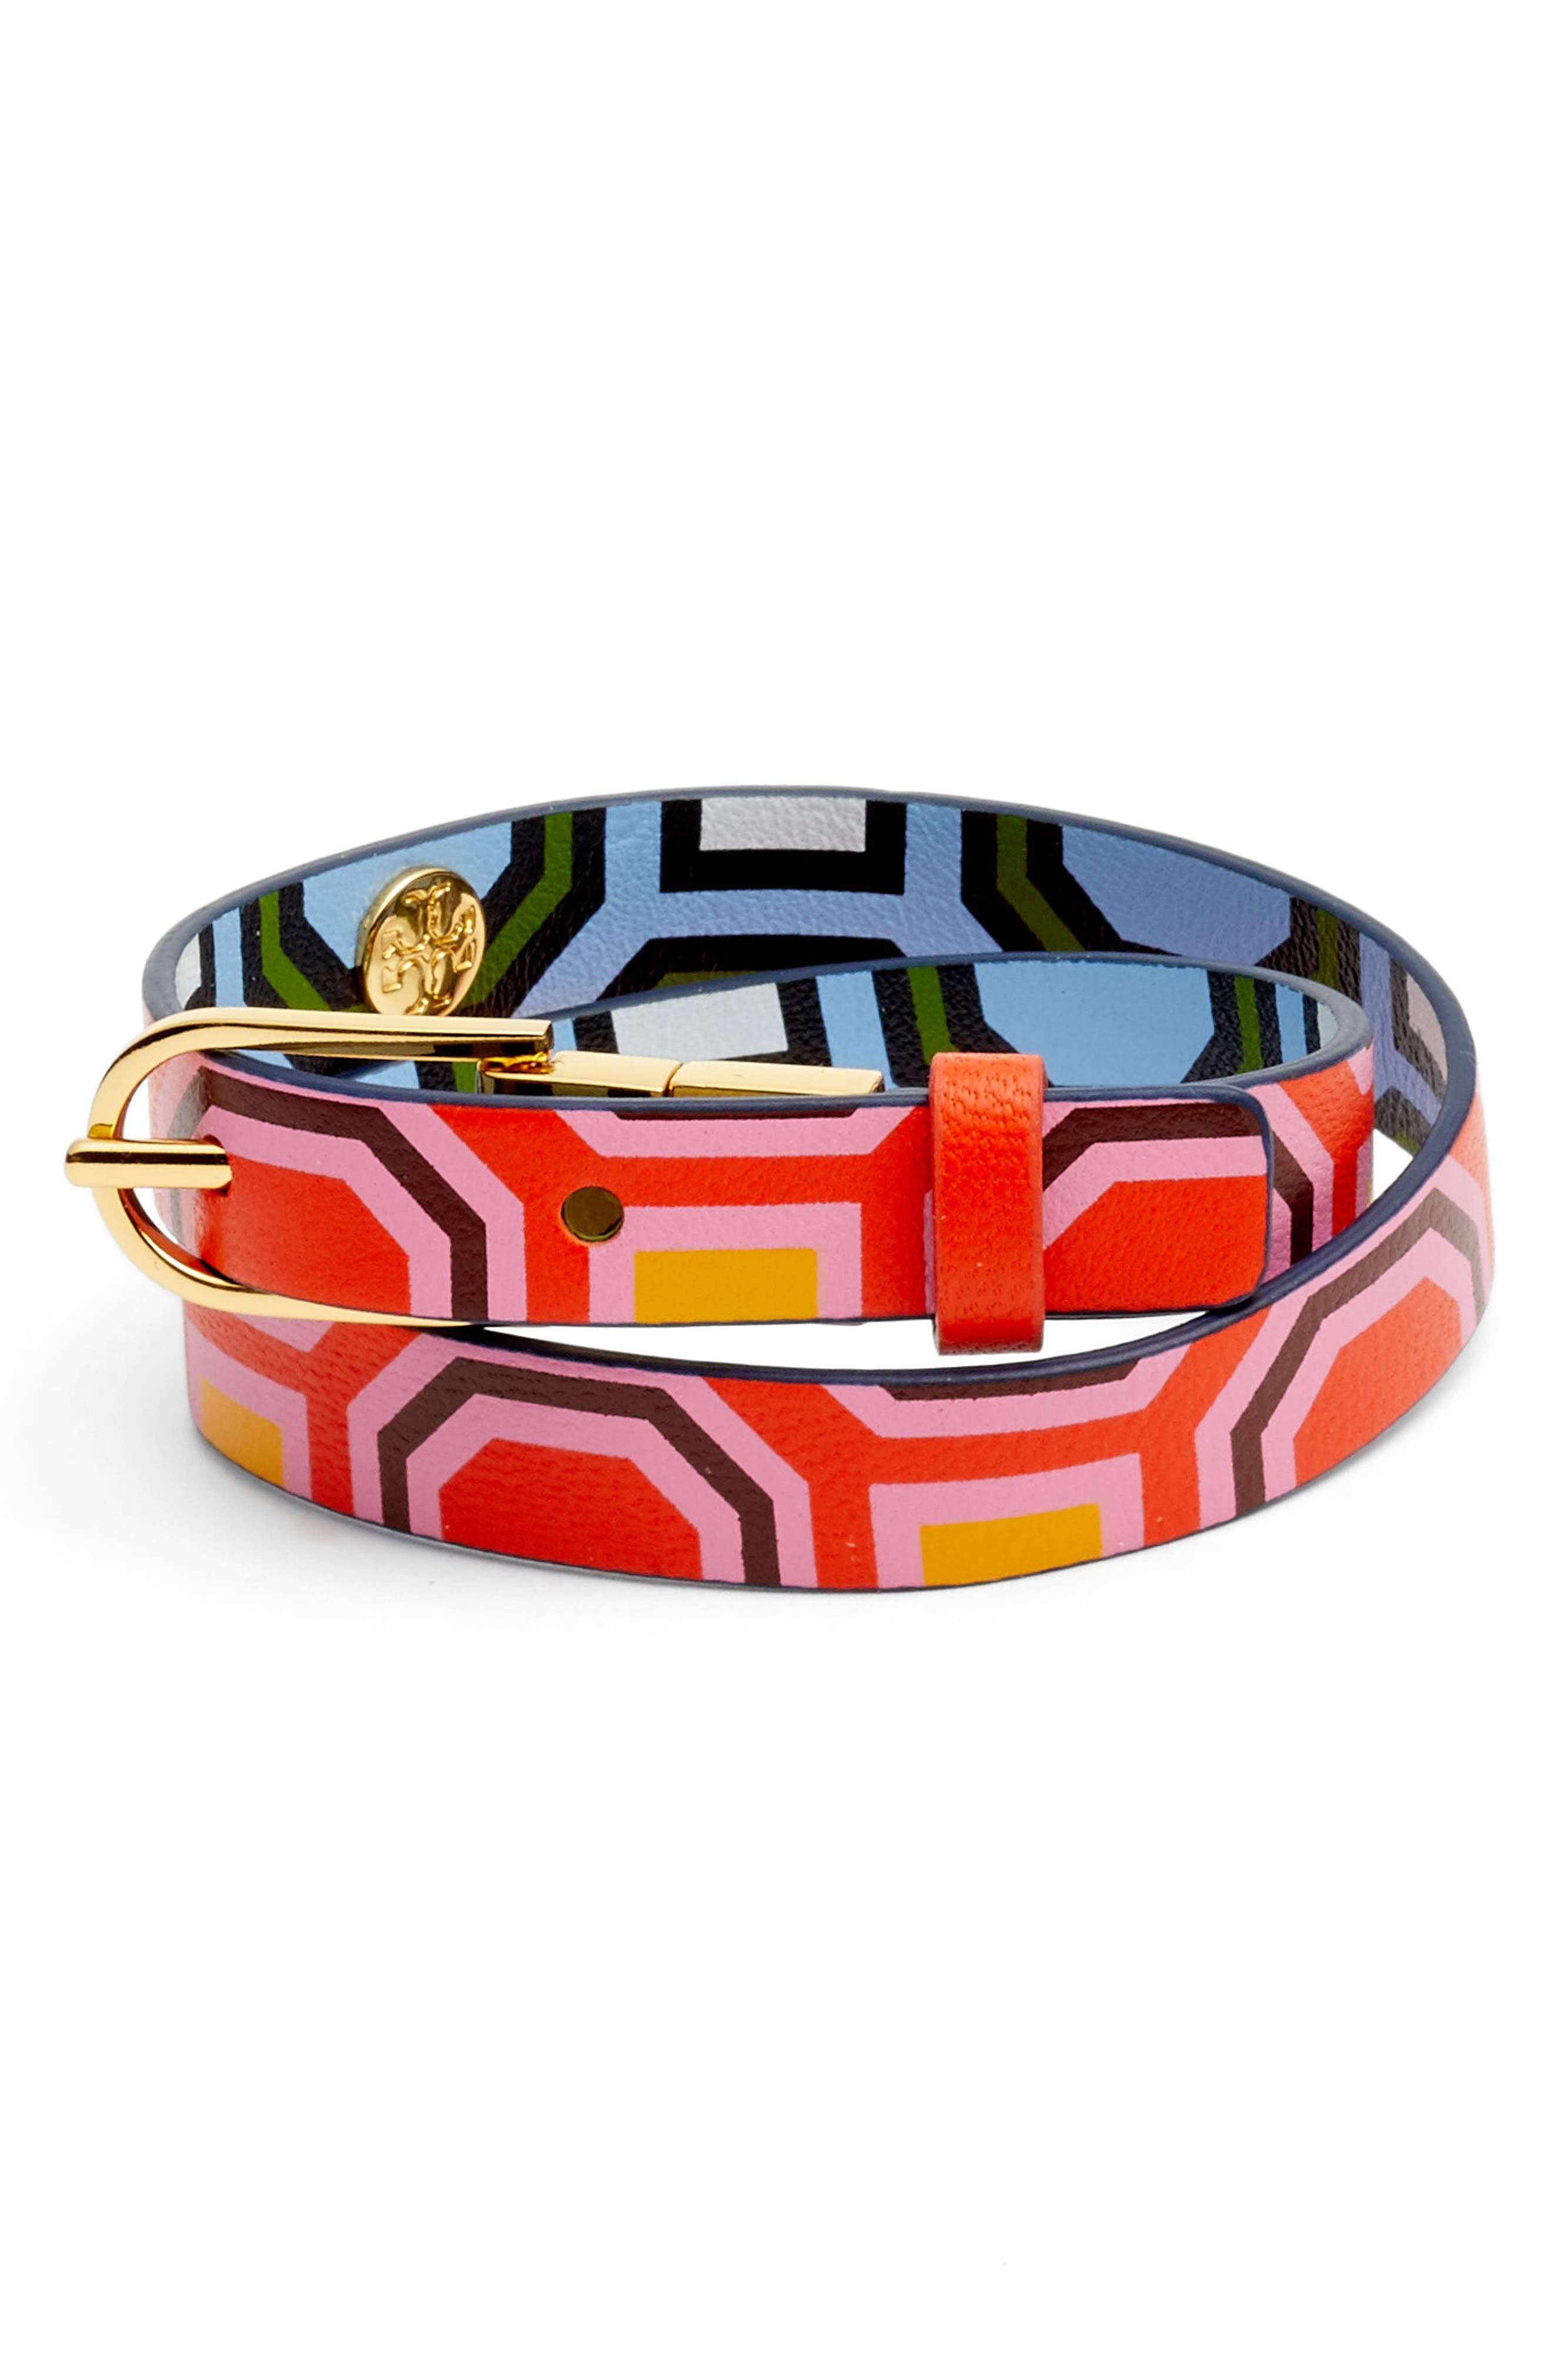 Reversible Leather Double Wrap Bracelet,                         Main,                         color, Octagon Square Multi